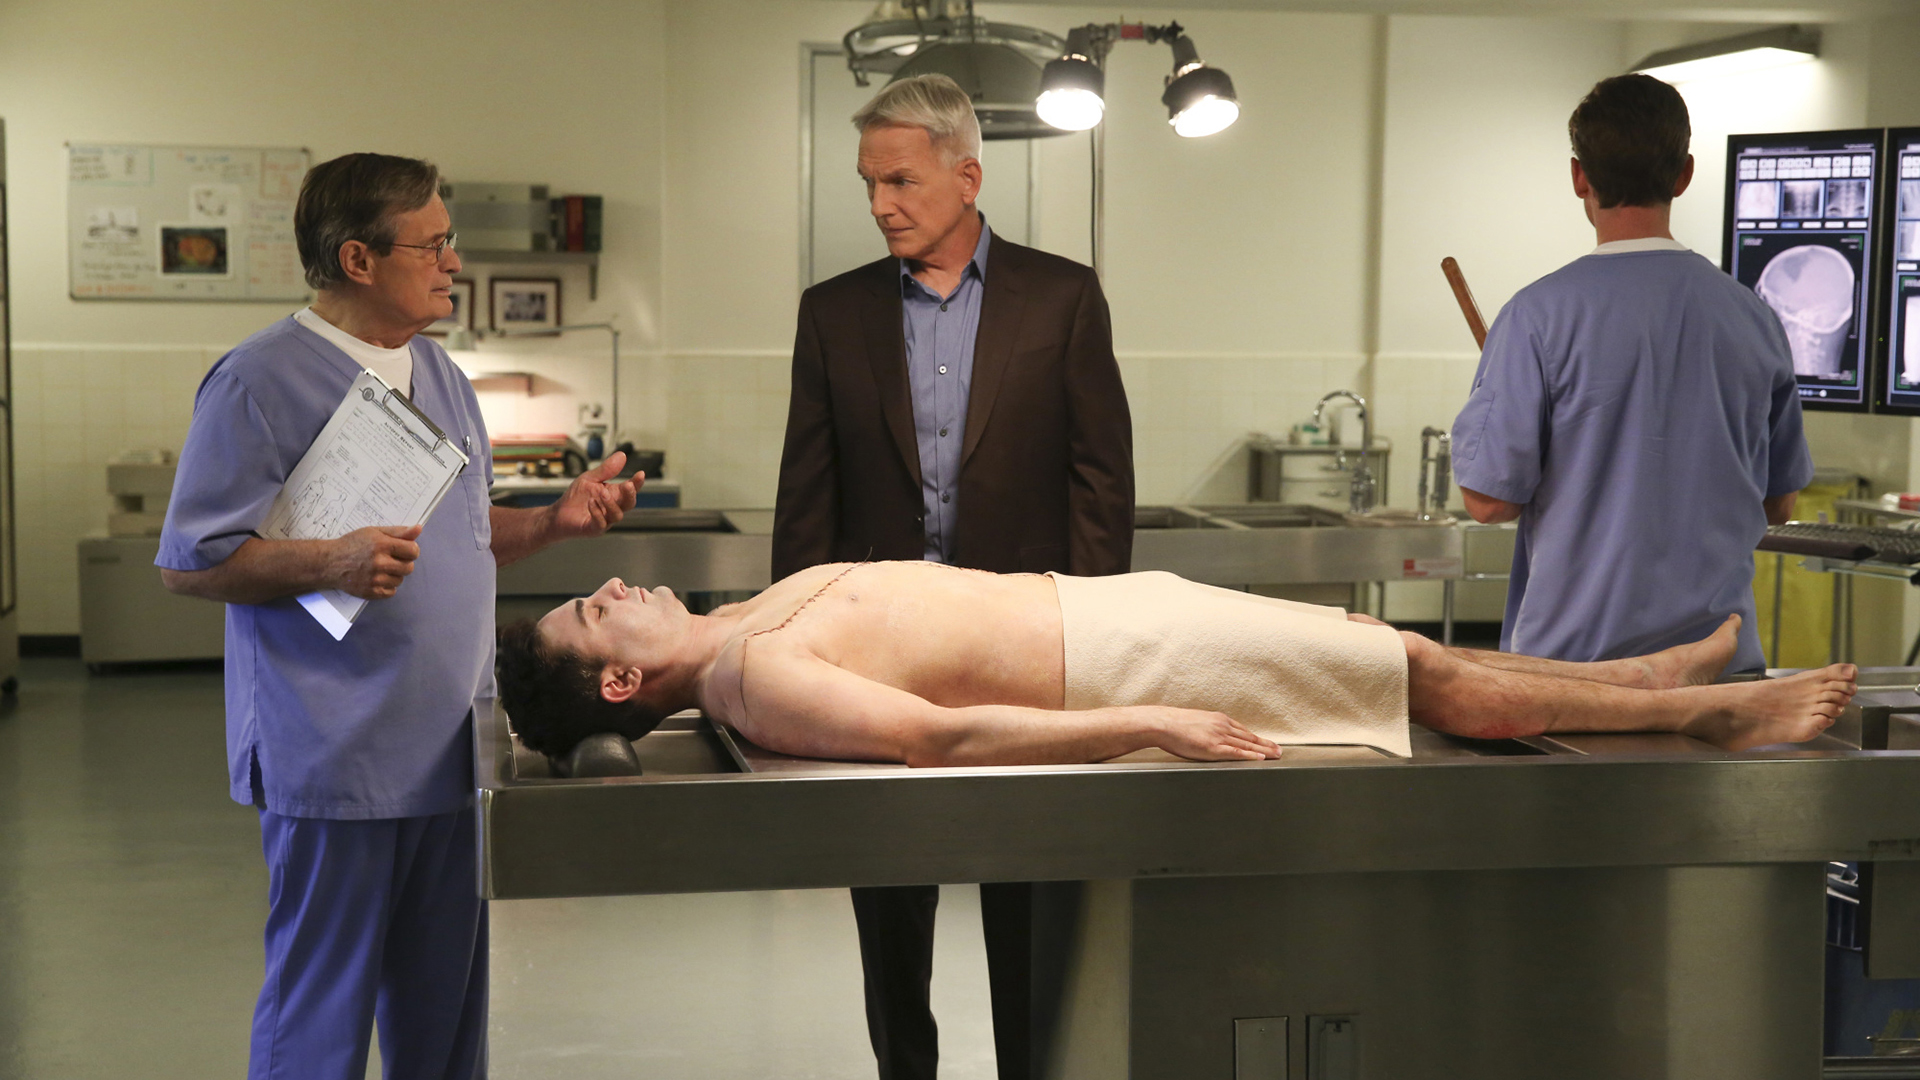 Gibbs and Ducky confer over the corpse.